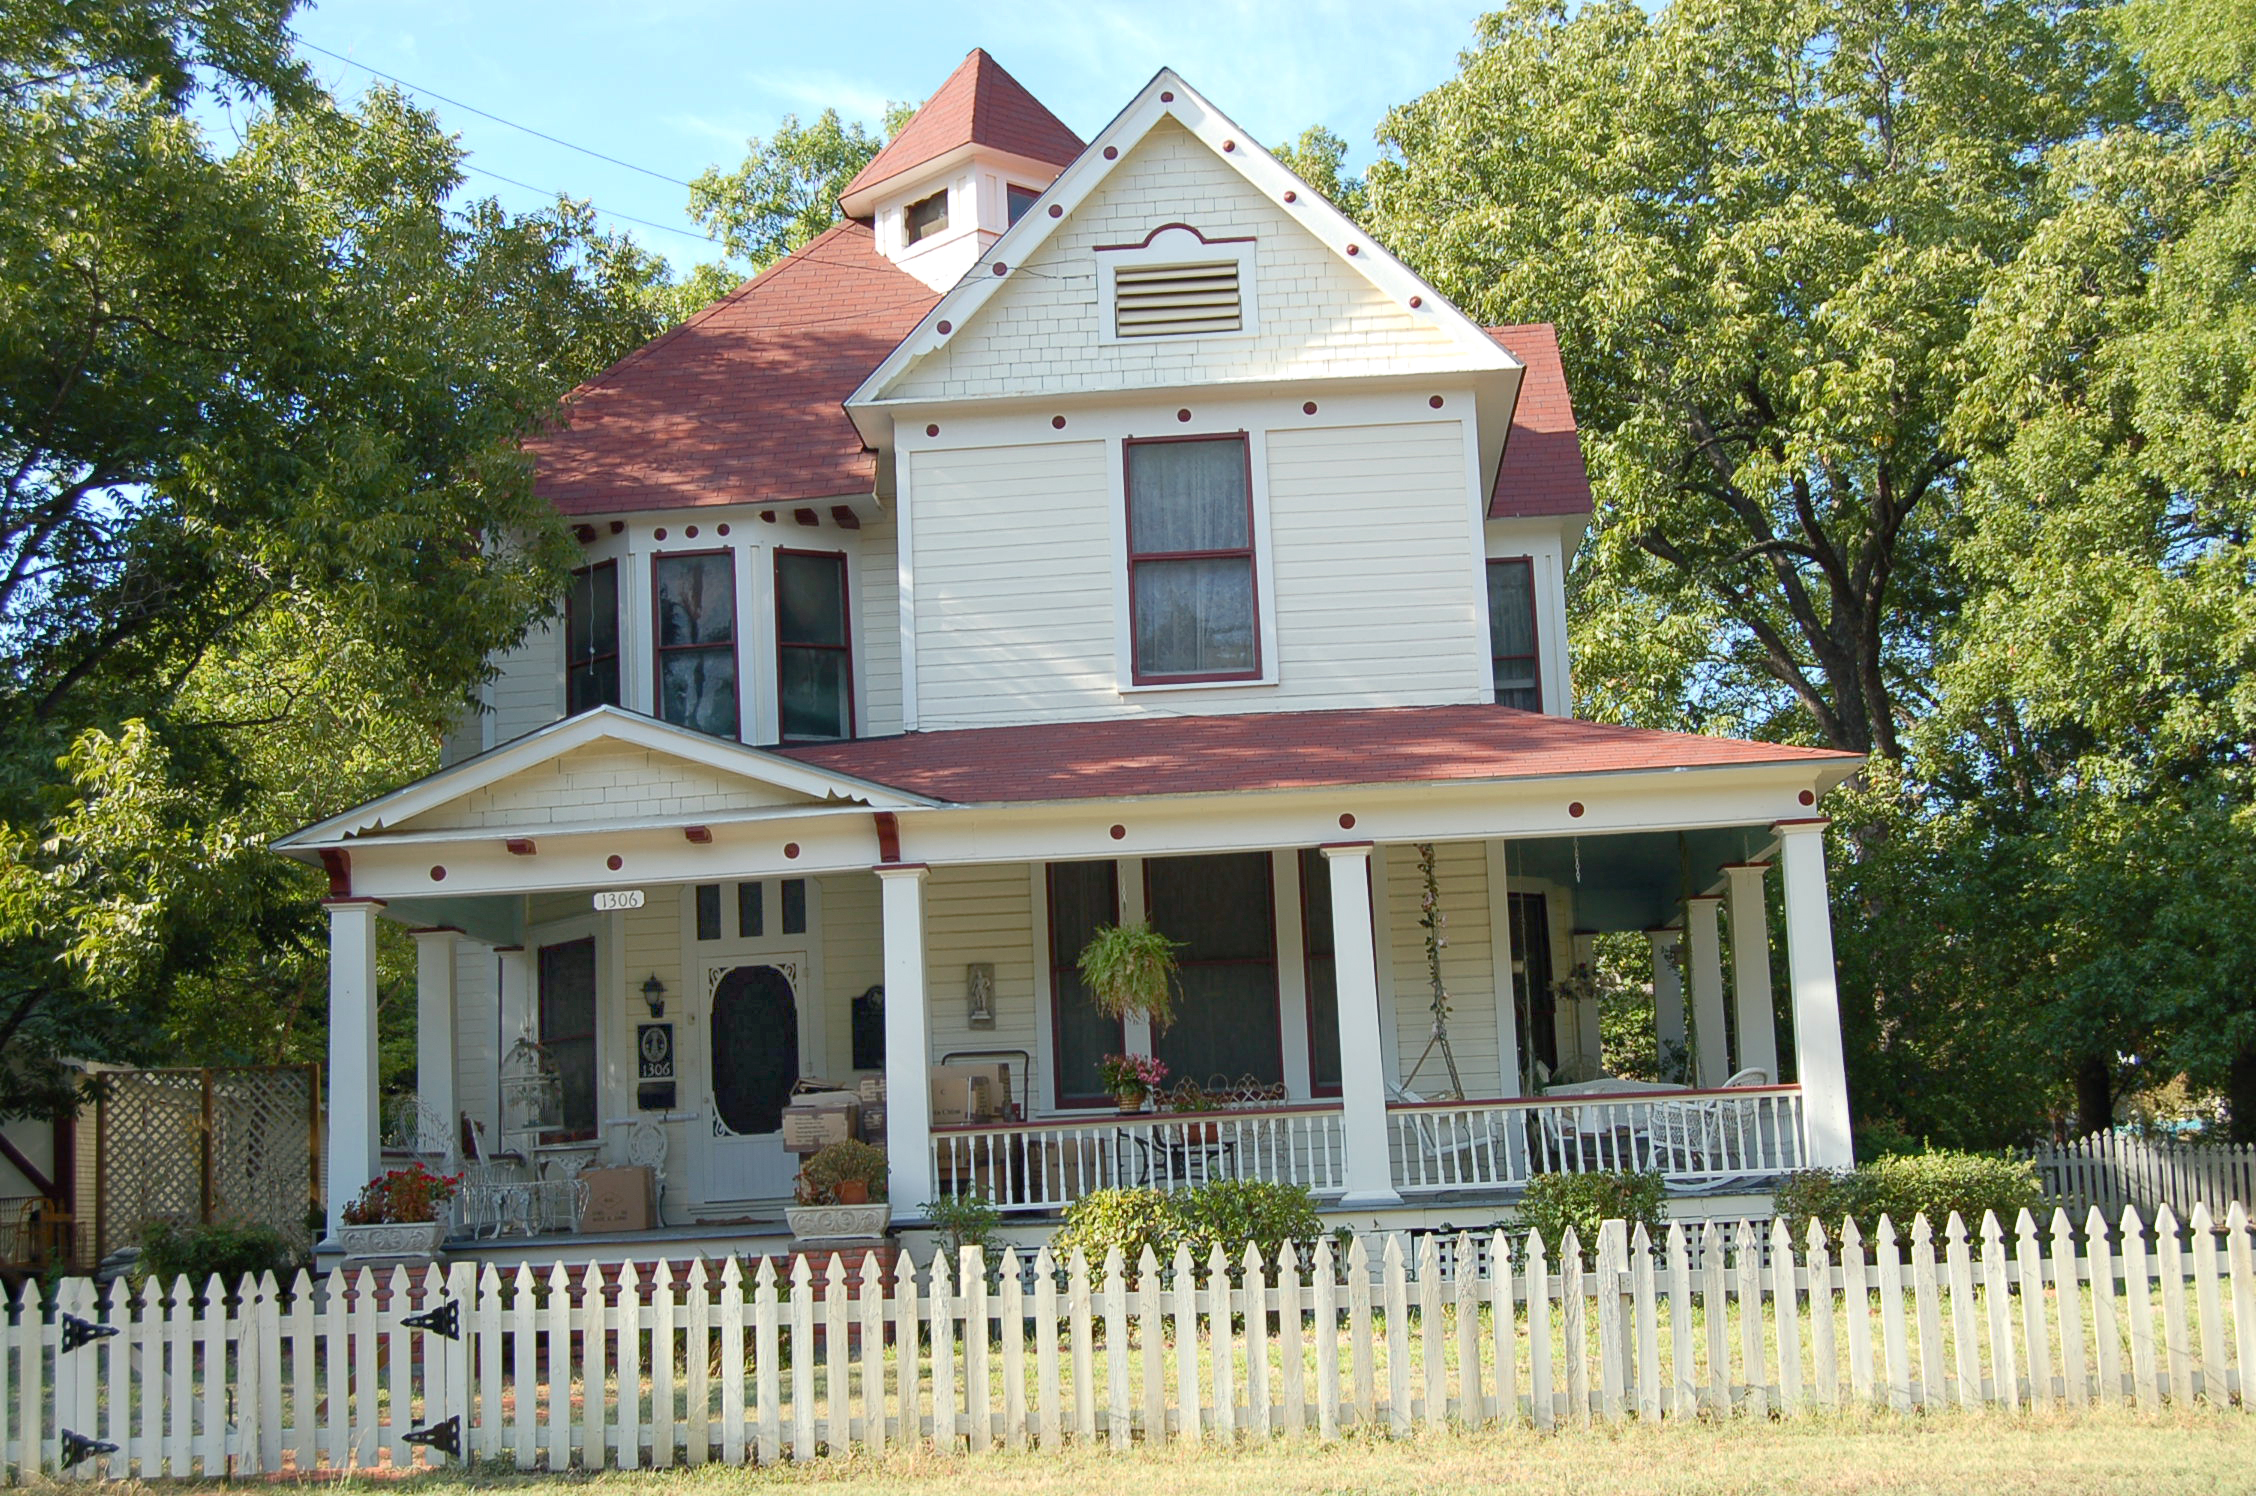 Home in the Carriage Historical District in Corsicana, TX